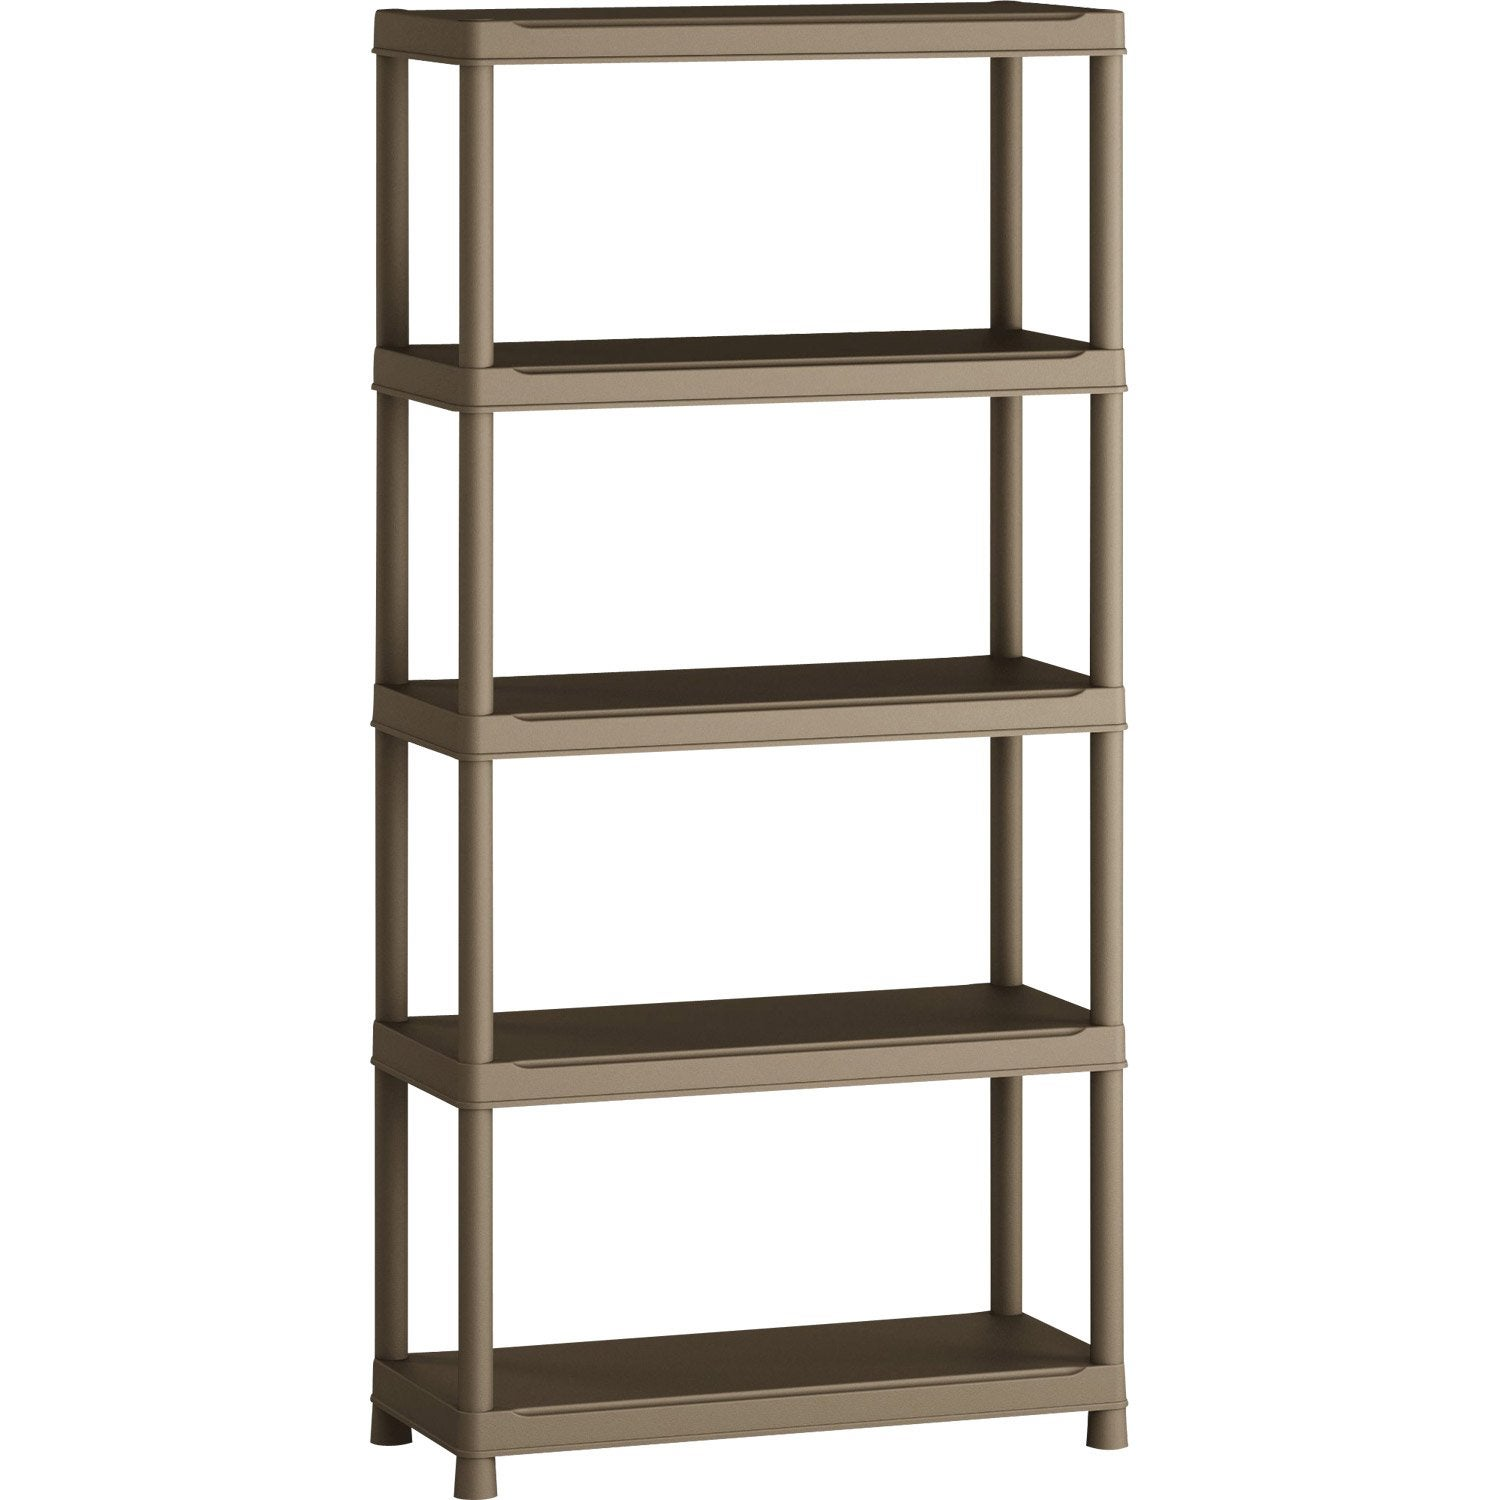 Etag re r sine spaceo 5 tablettes terre l90xh181xp40 cm - Etagere a chaussure leroy merlin ...